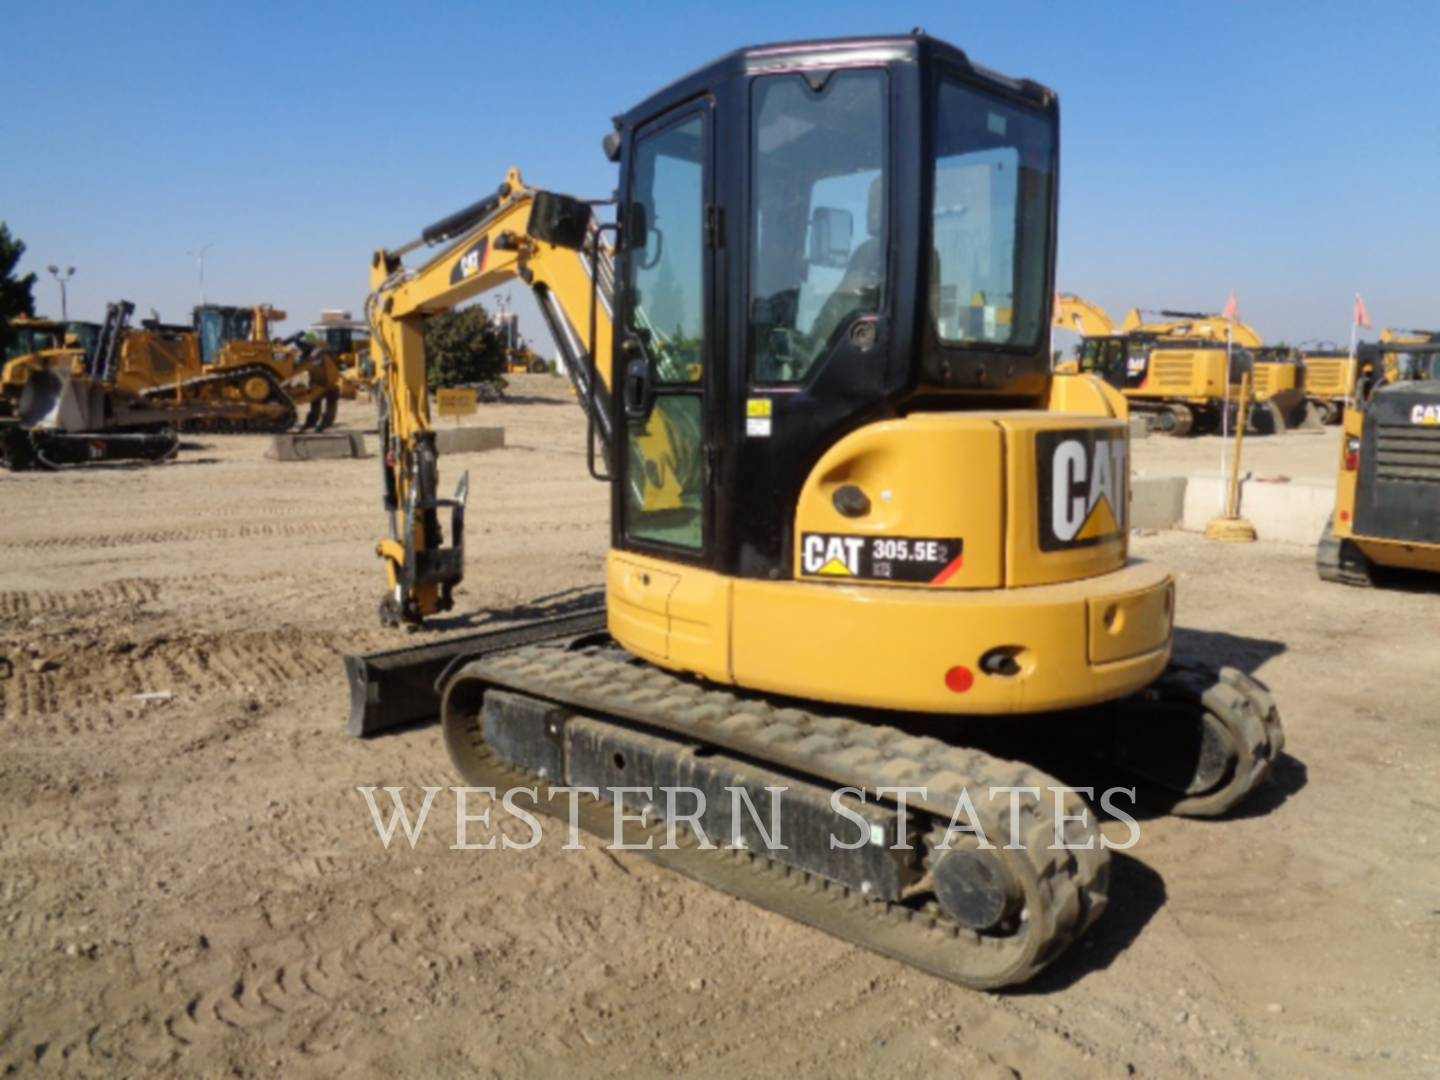 2015 CATERPILLAR 305.5E2CR image2